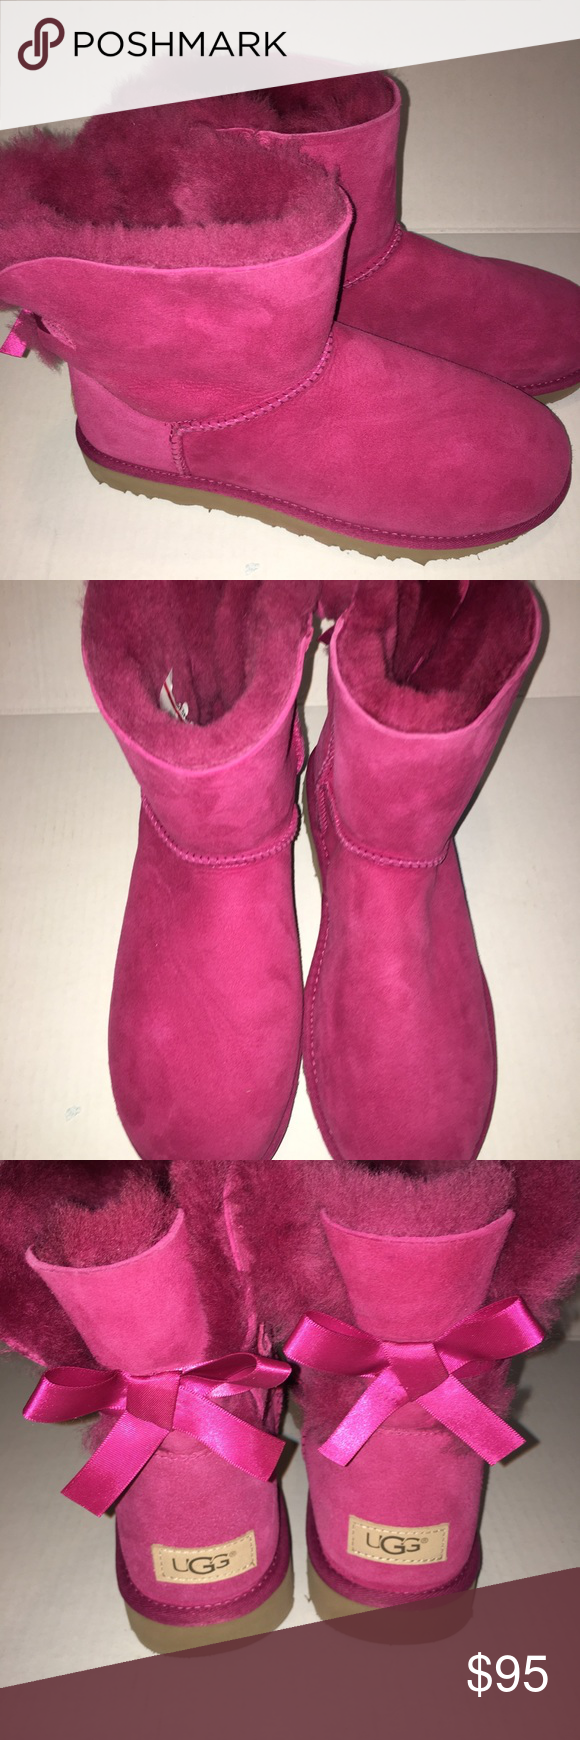 6a4ed187e1b Spotted while shopping on Poshmark: ⭐ Ugg Boots Women's Bailey Pink ...